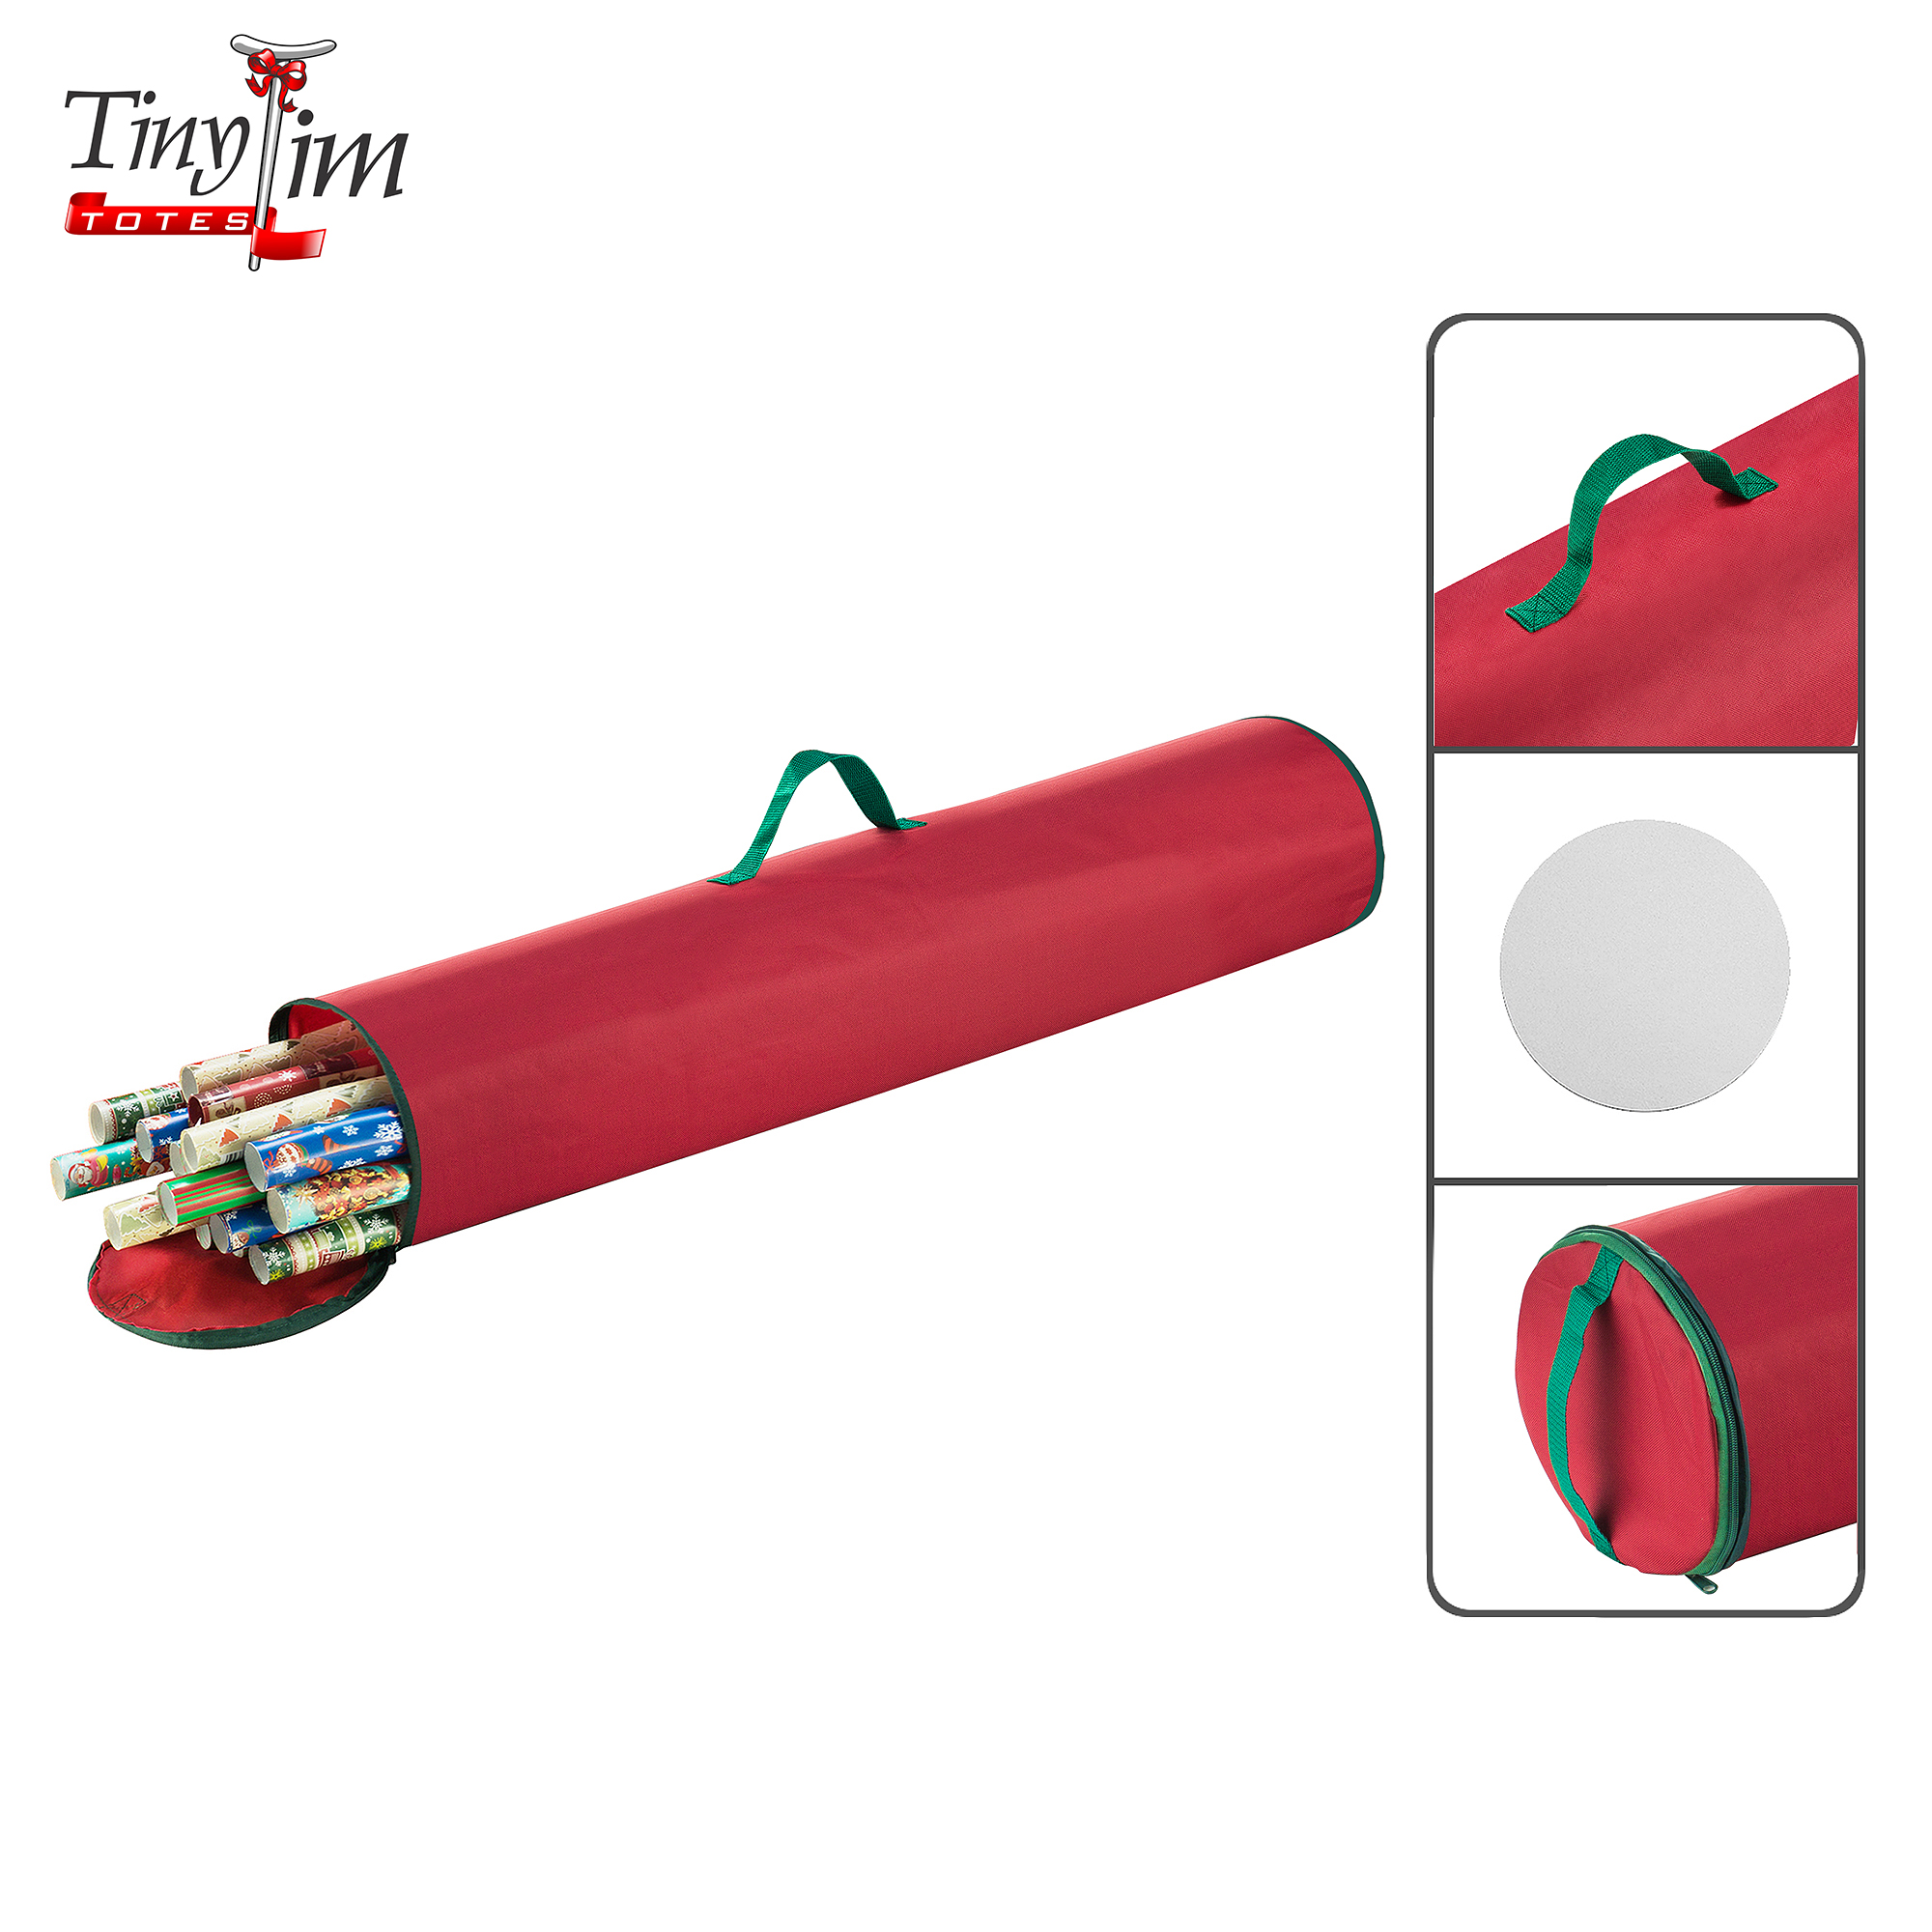 Tiny Tim Totes | Premium Gift Wrap Organizer | 40.5 inch Wrapping Paper | Red